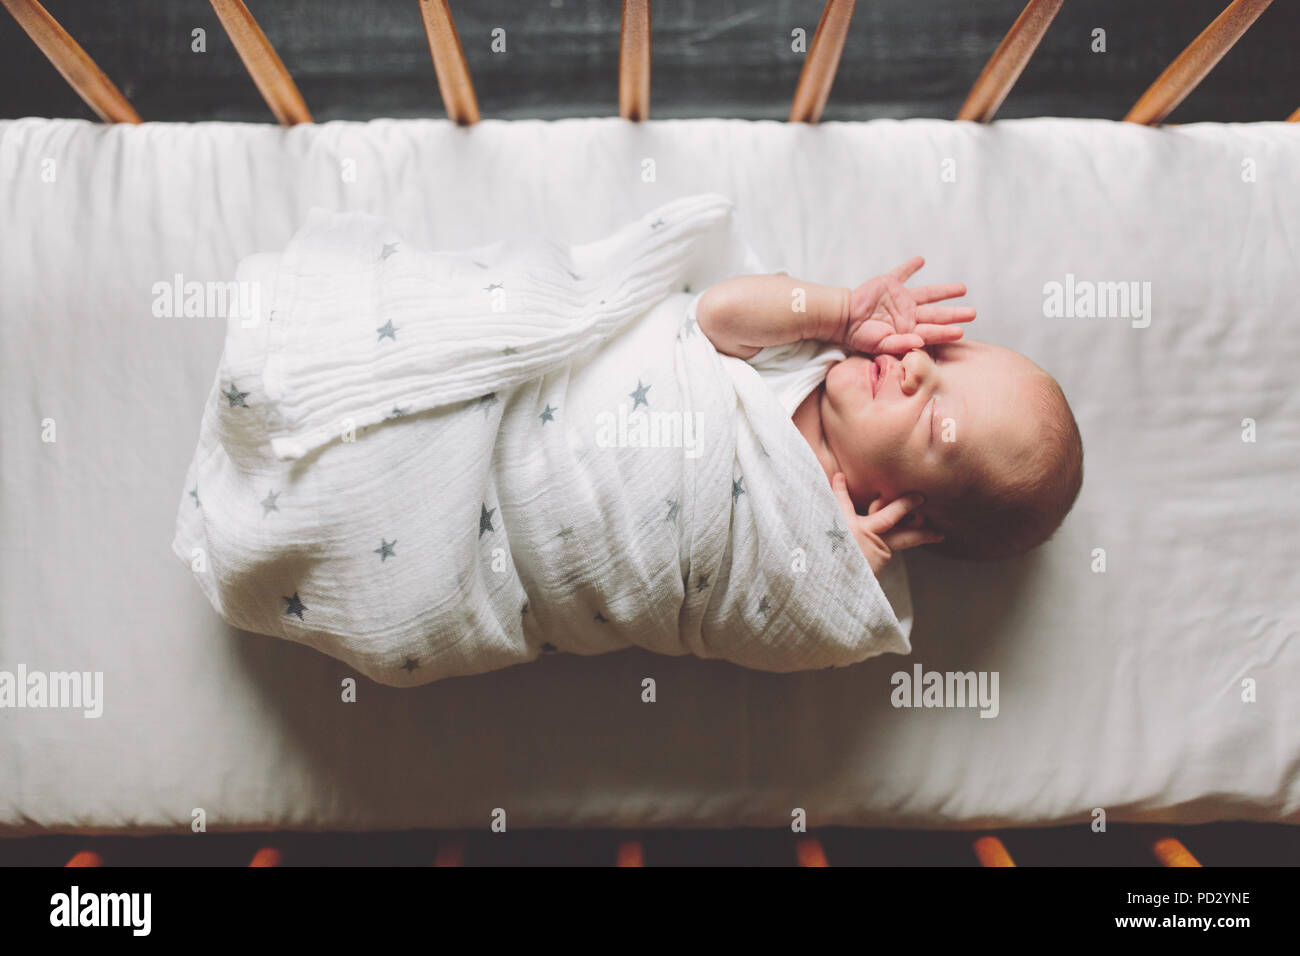 New born baby boy swaddled in cot, overhead view - Stock Image